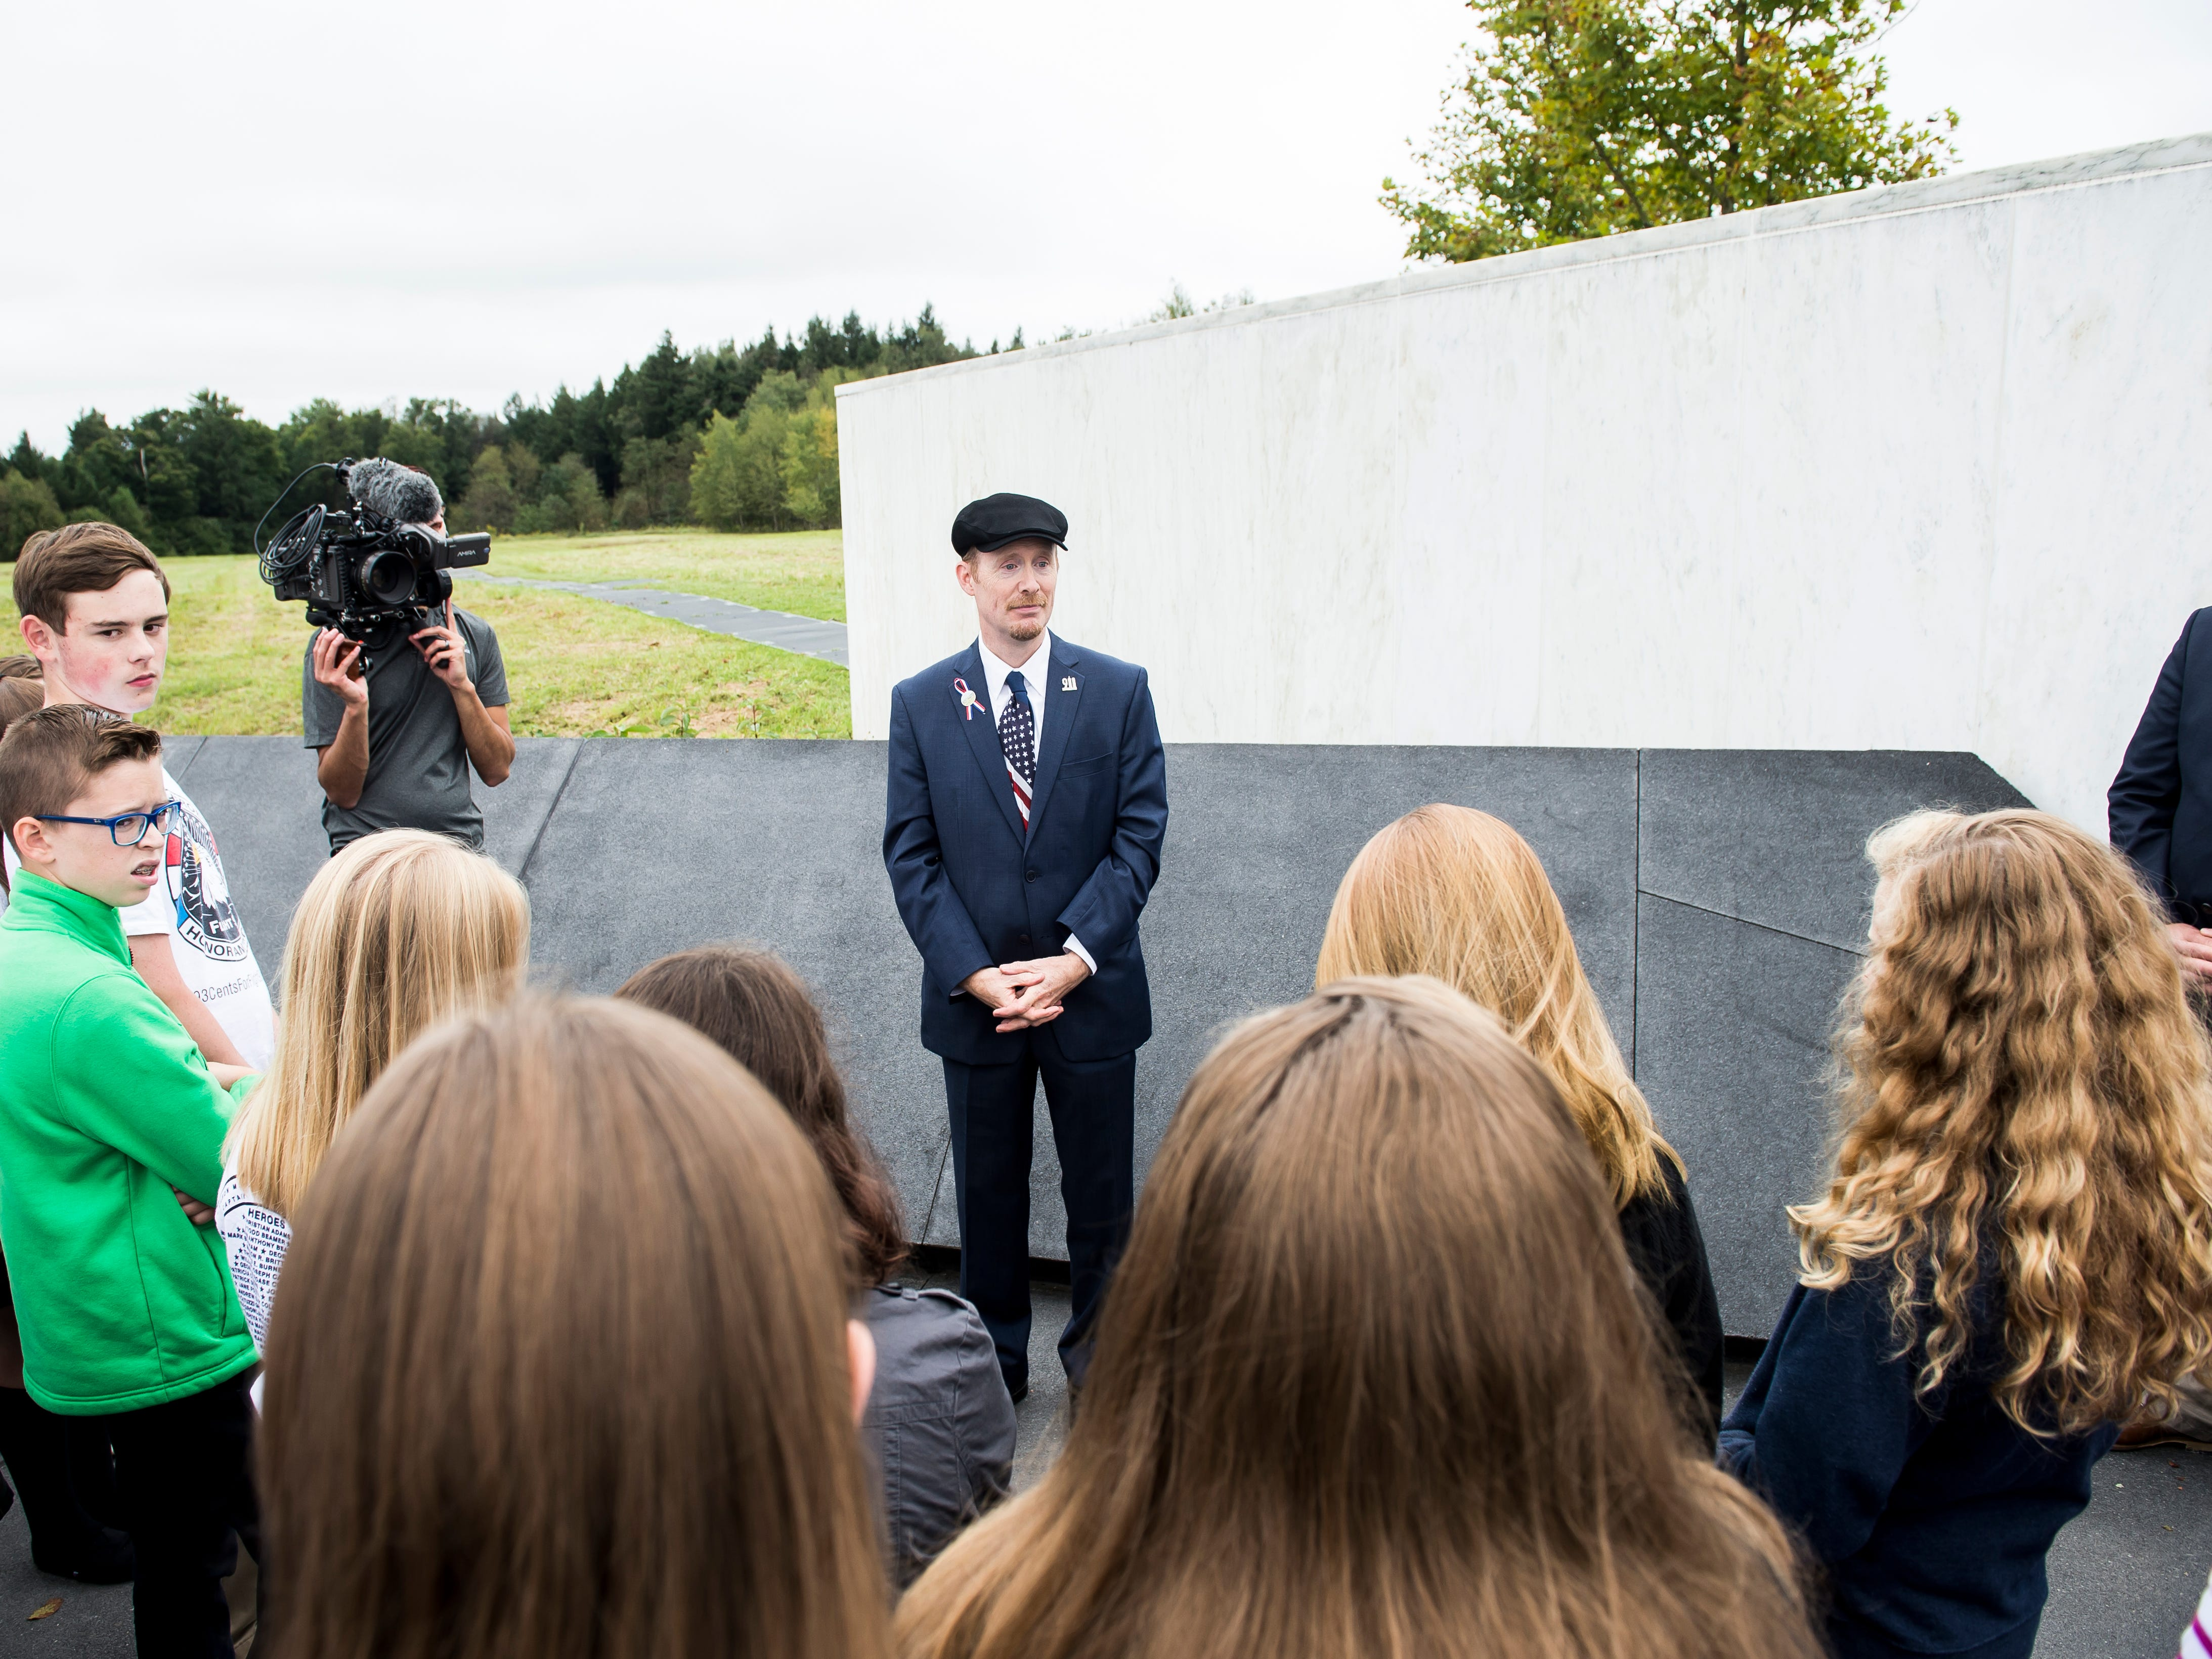 Gordon Felt, president of the Families of Flight 93, answers questions from students at the memorial in Shanksville on the 17th anniversary of the terror attacks September 11, 2018.